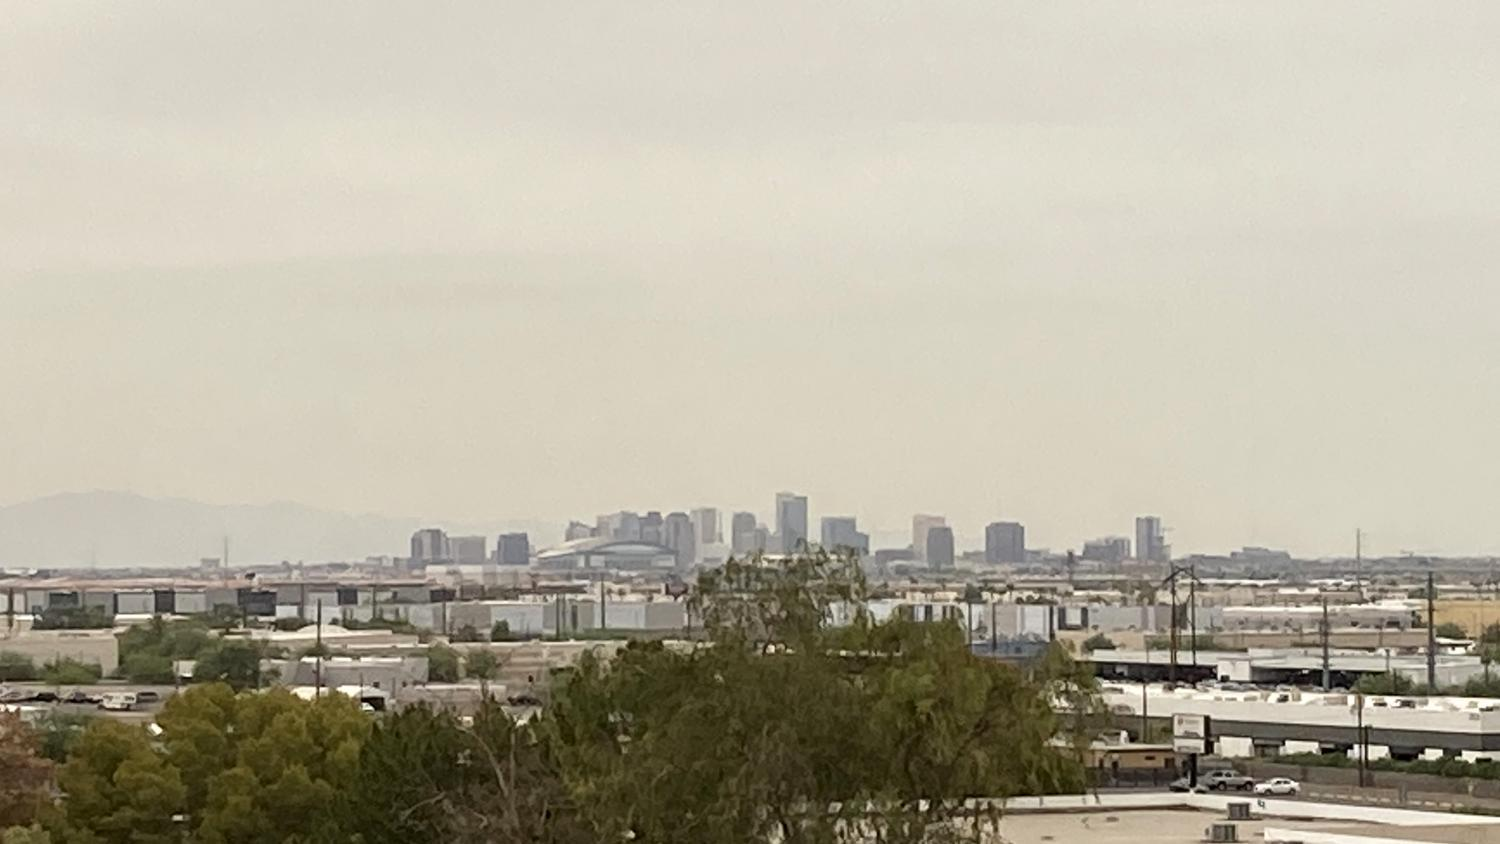 The view of downtown Phoenix